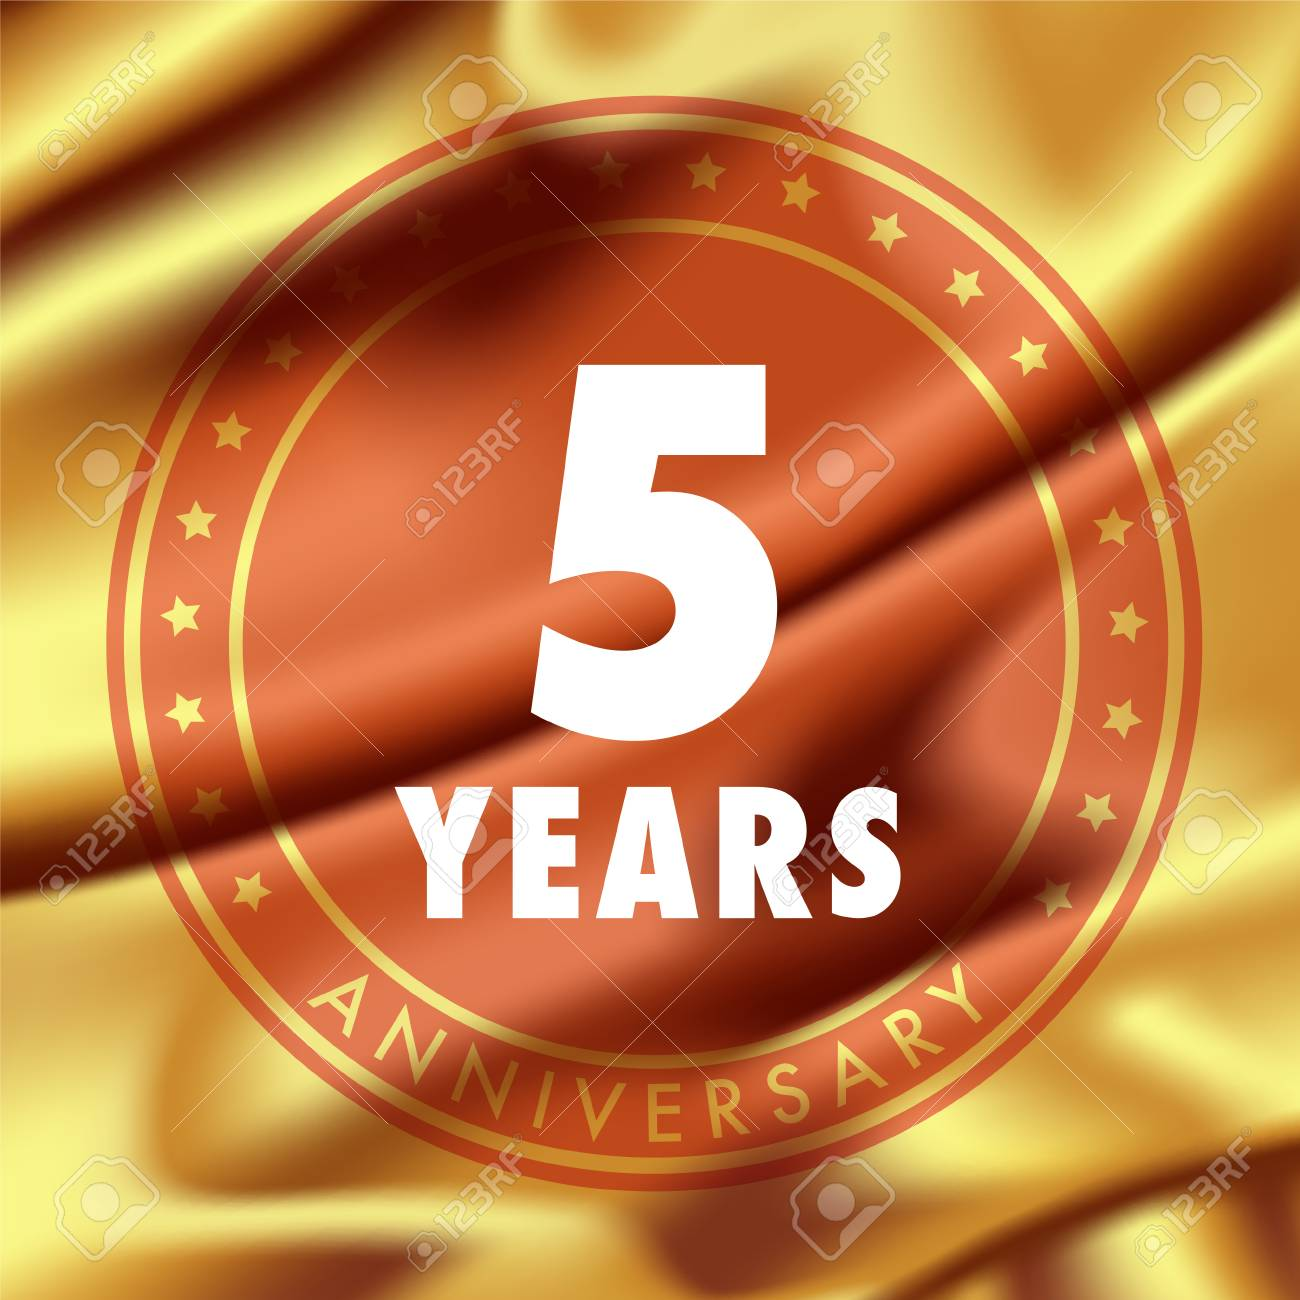 5 Years Anniversary Vector Icon Logo Template Design Element With